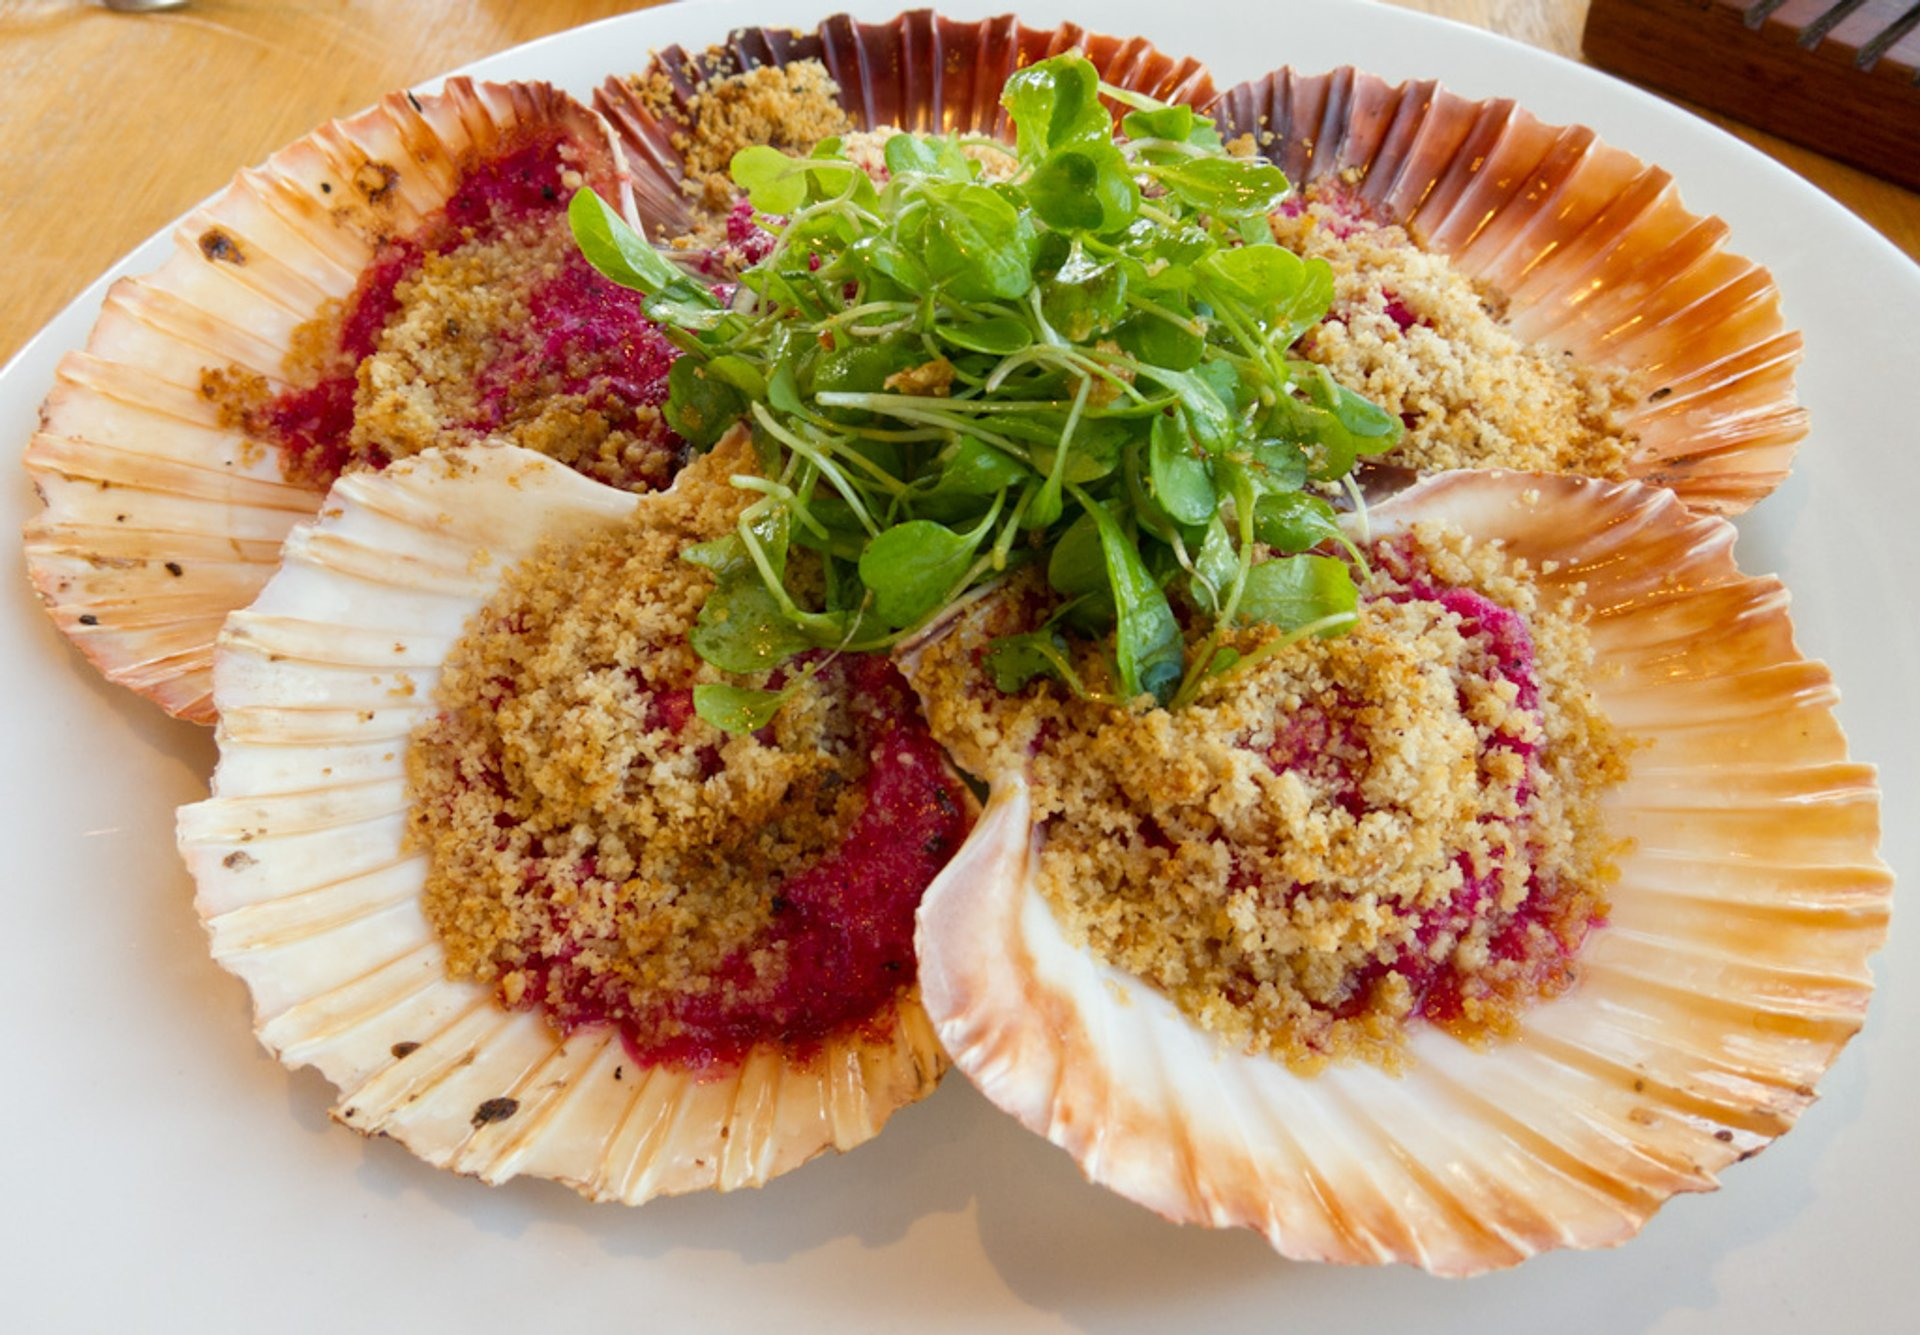 Best time for Scallop in Tasmania